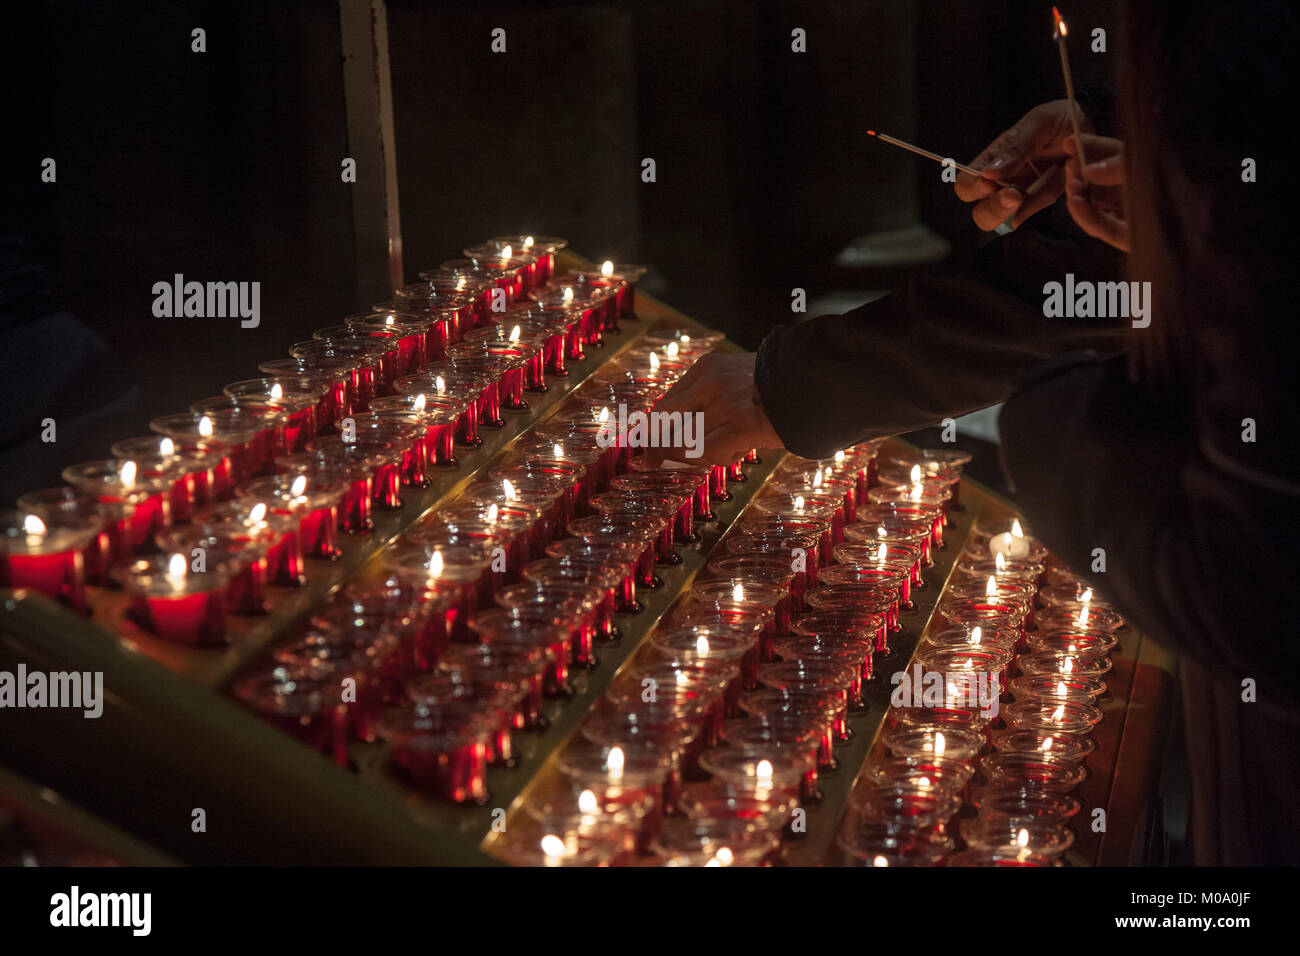 People lighting candles in the Notre Dame cathedral in Paris France. Burning a candle & Catholic Church Candle Lighting Stock Photos u0026 Catholic Church ...